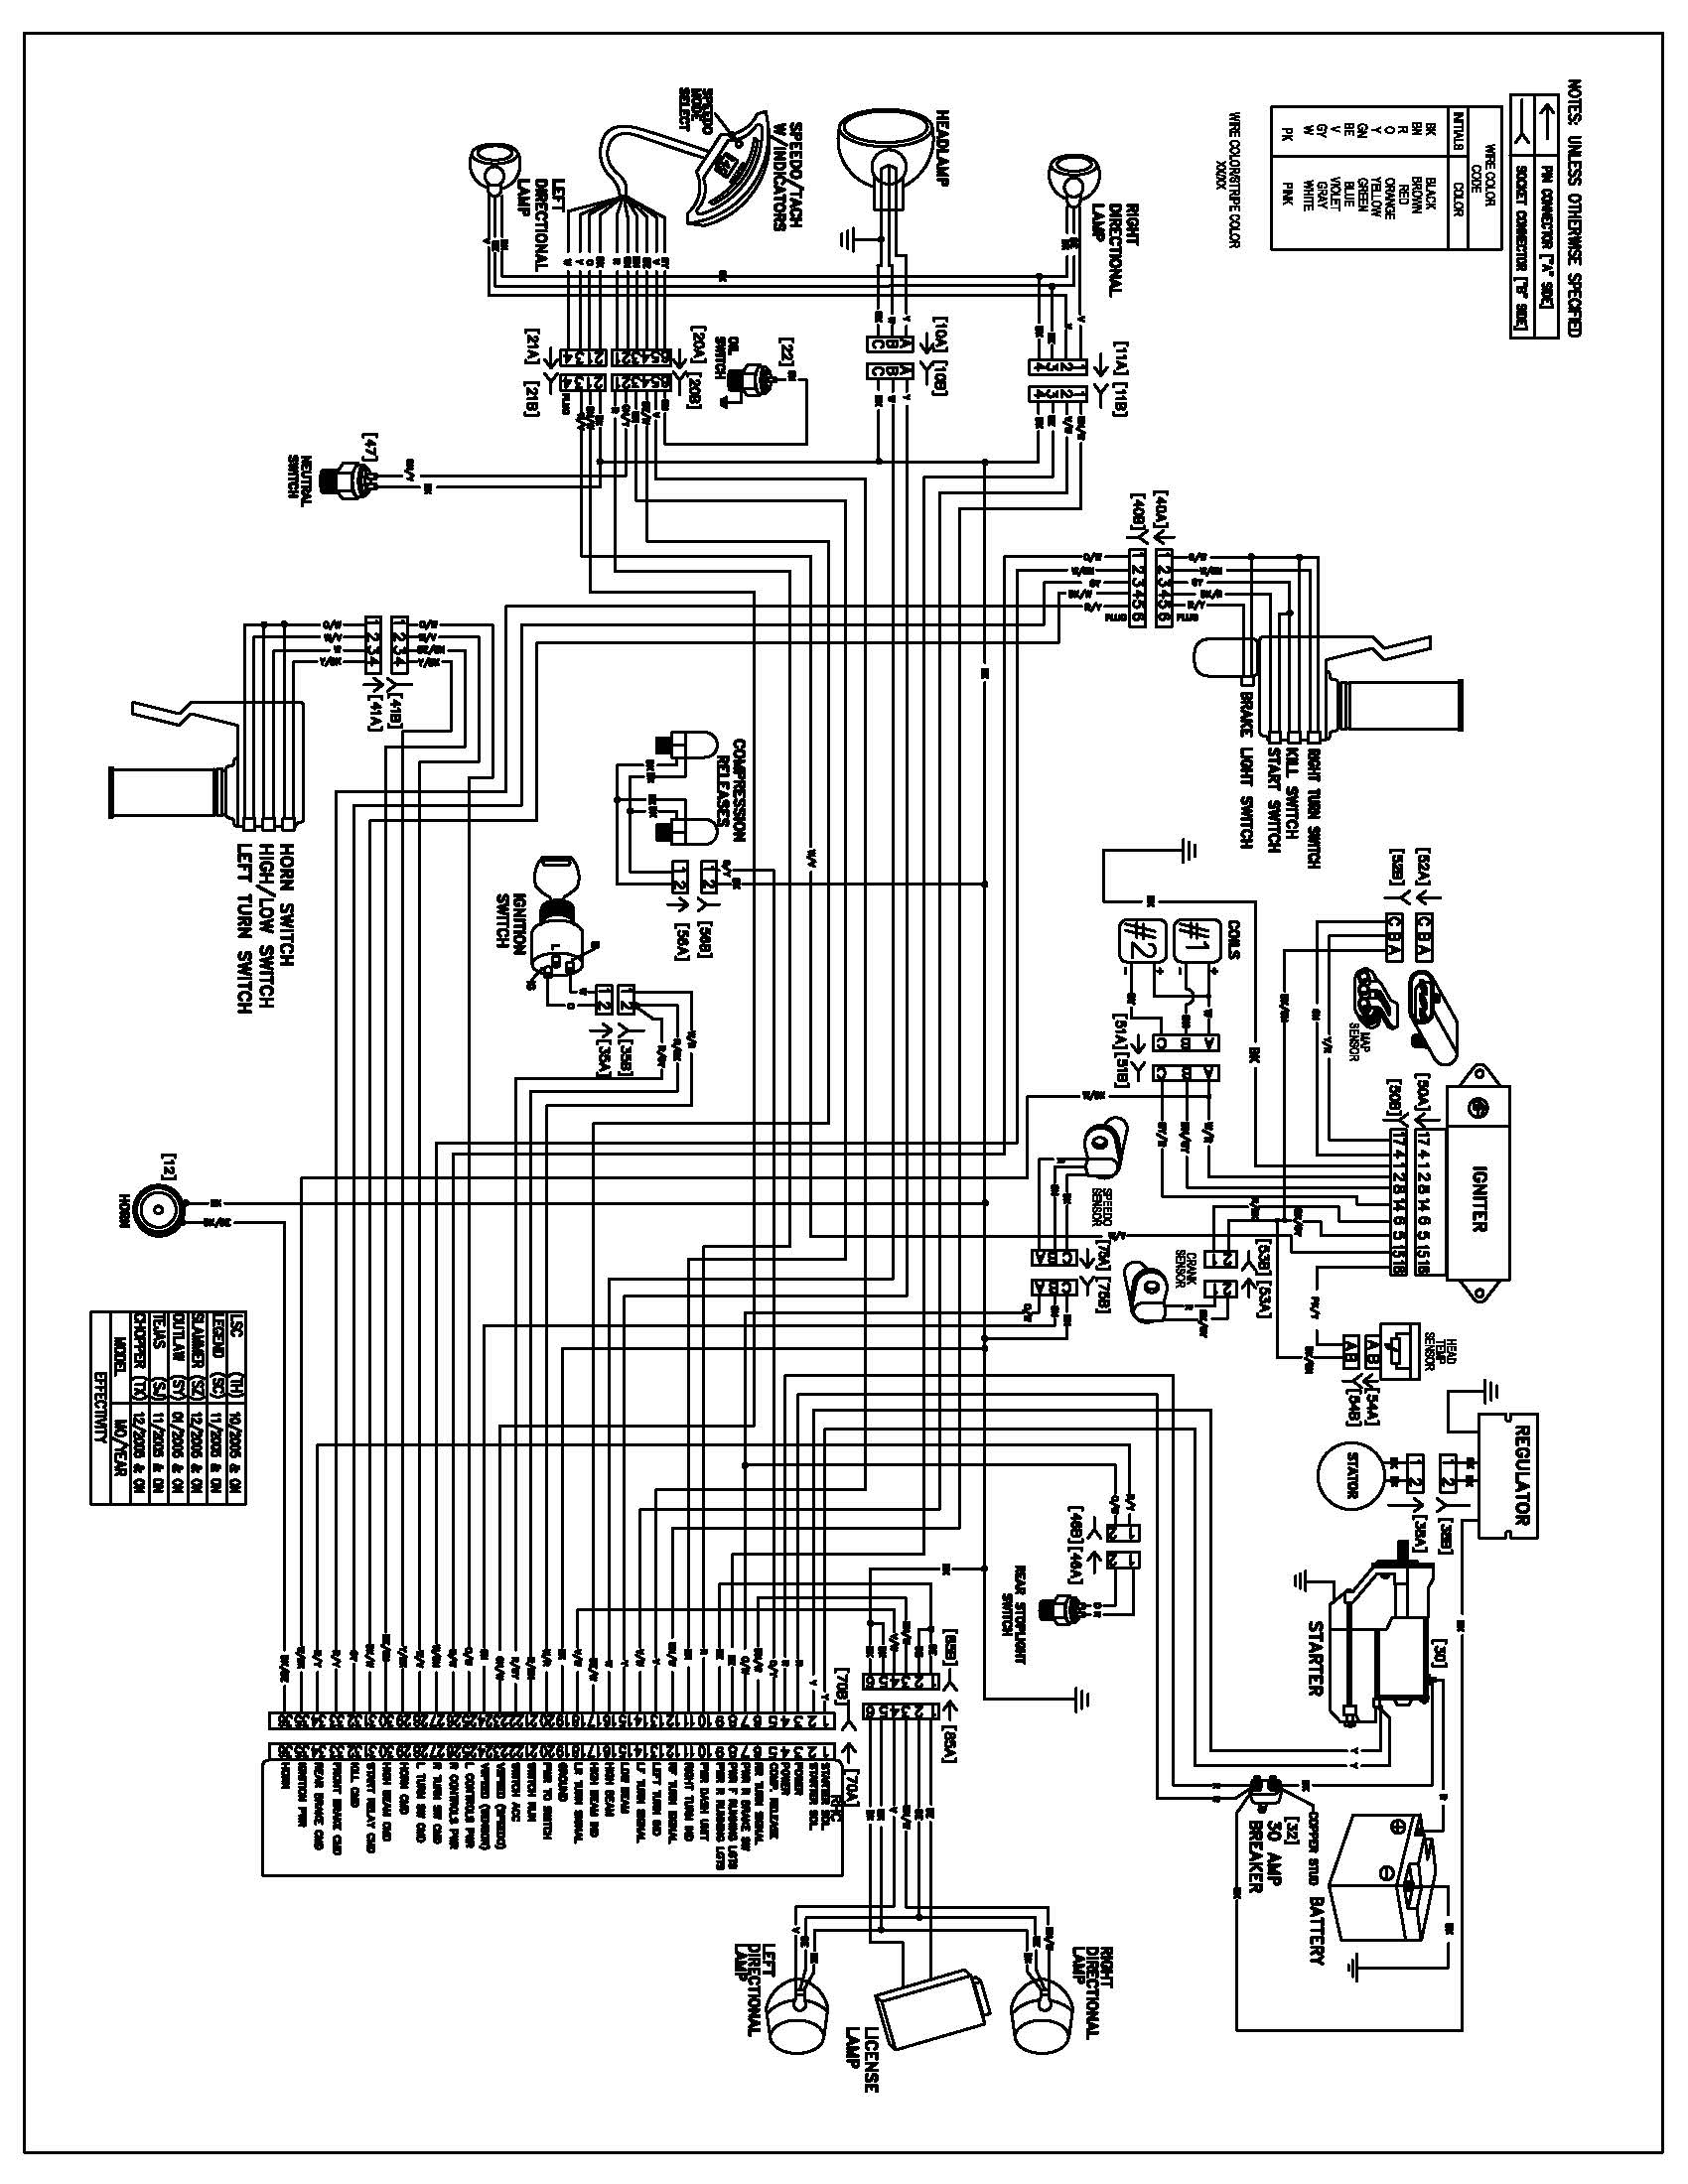 Horn Relay Wiring Diagram Likewise 2000 Honda Recon 250 Manual On